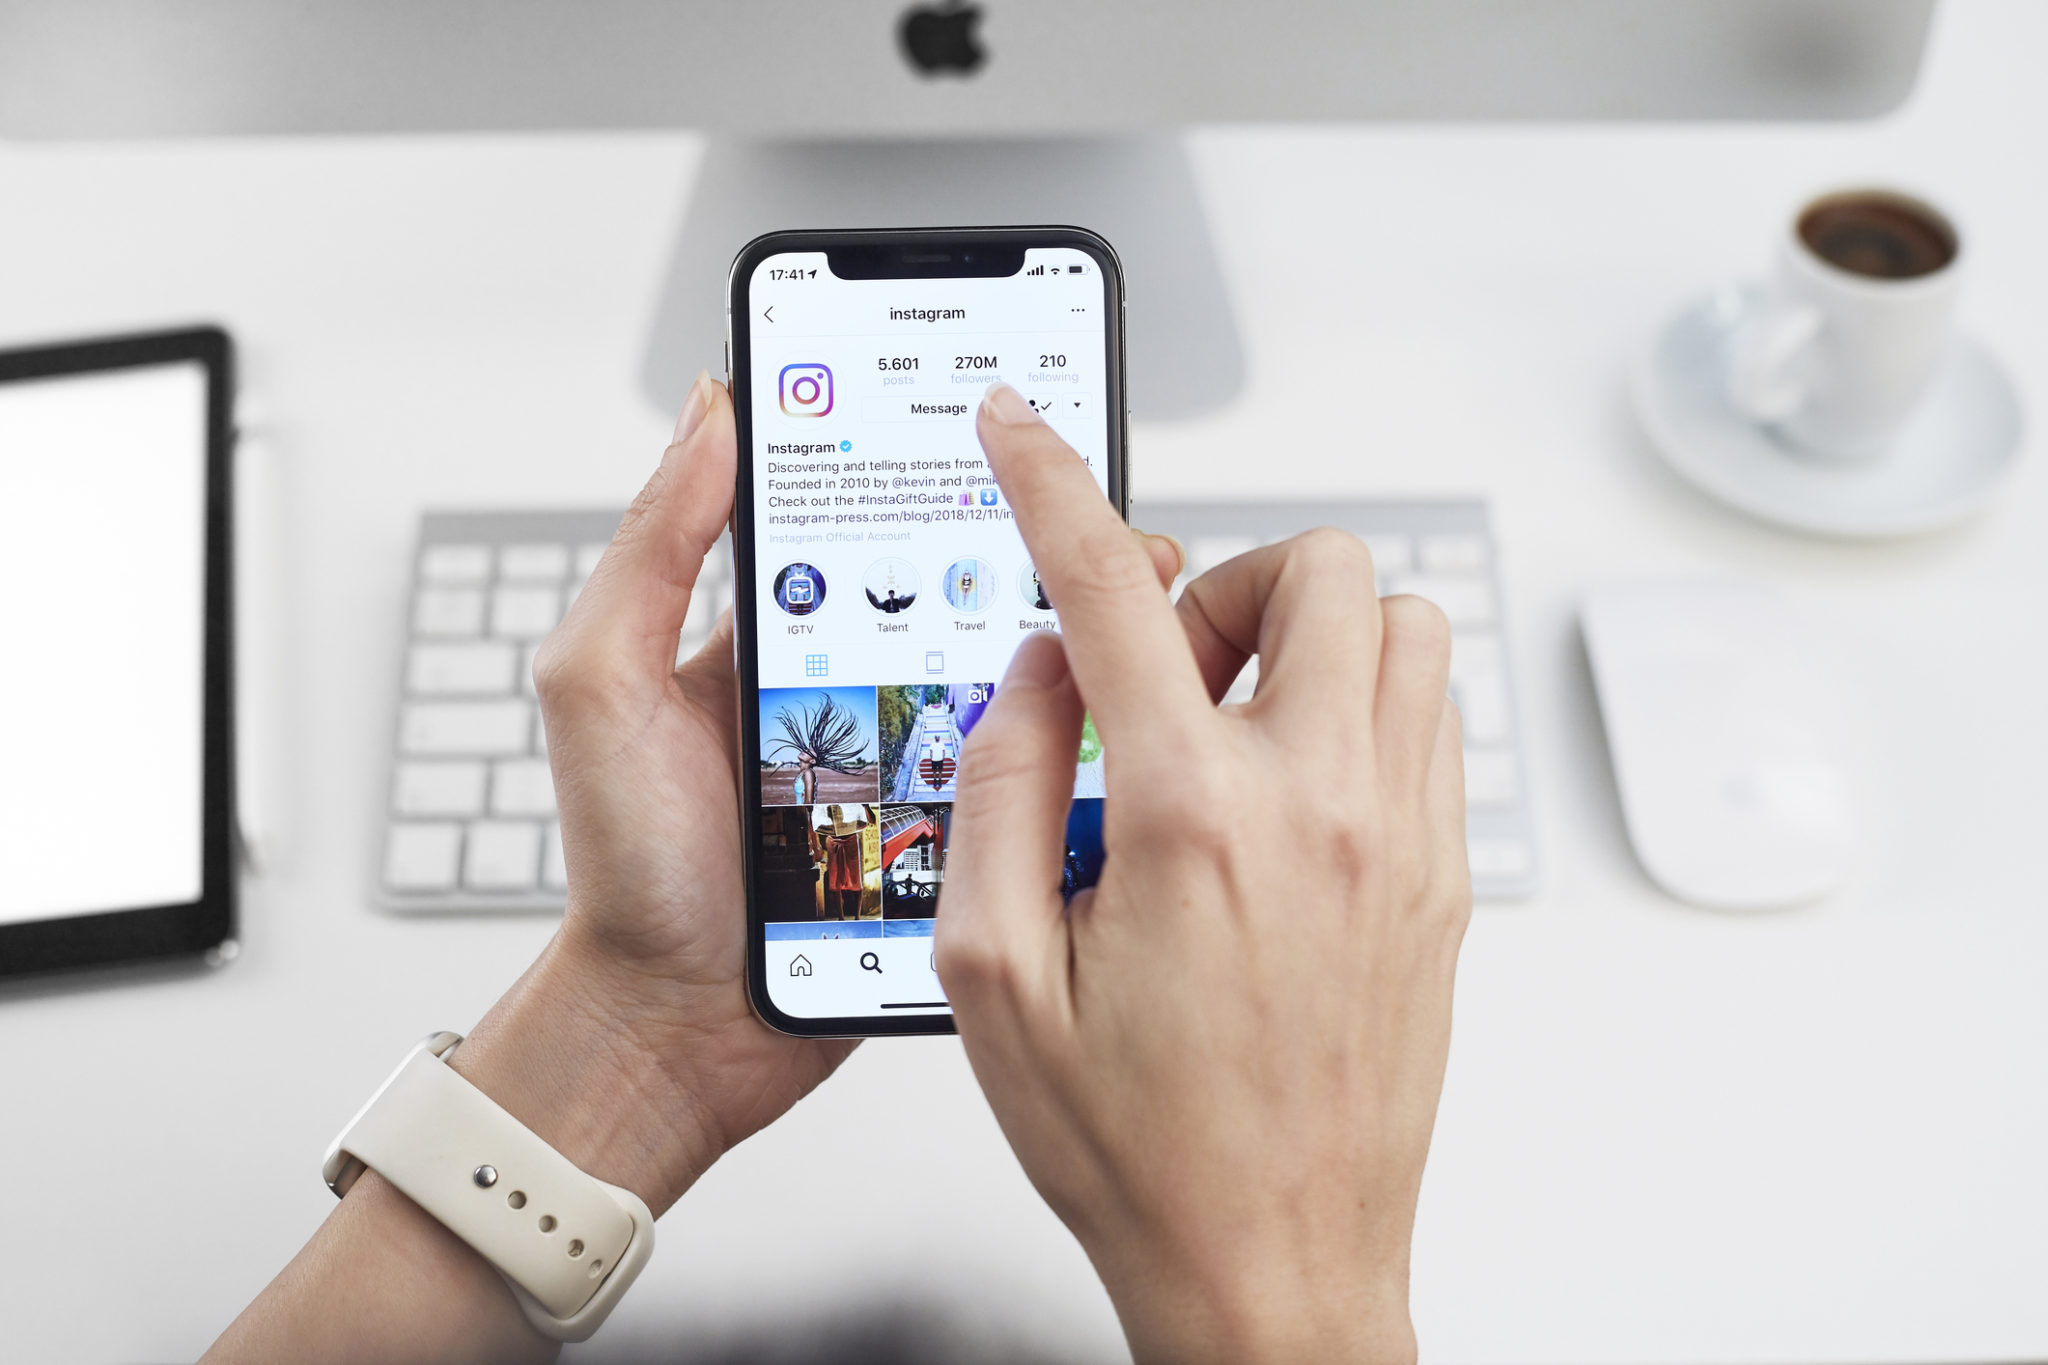 Instagram application on Apple iPhone X